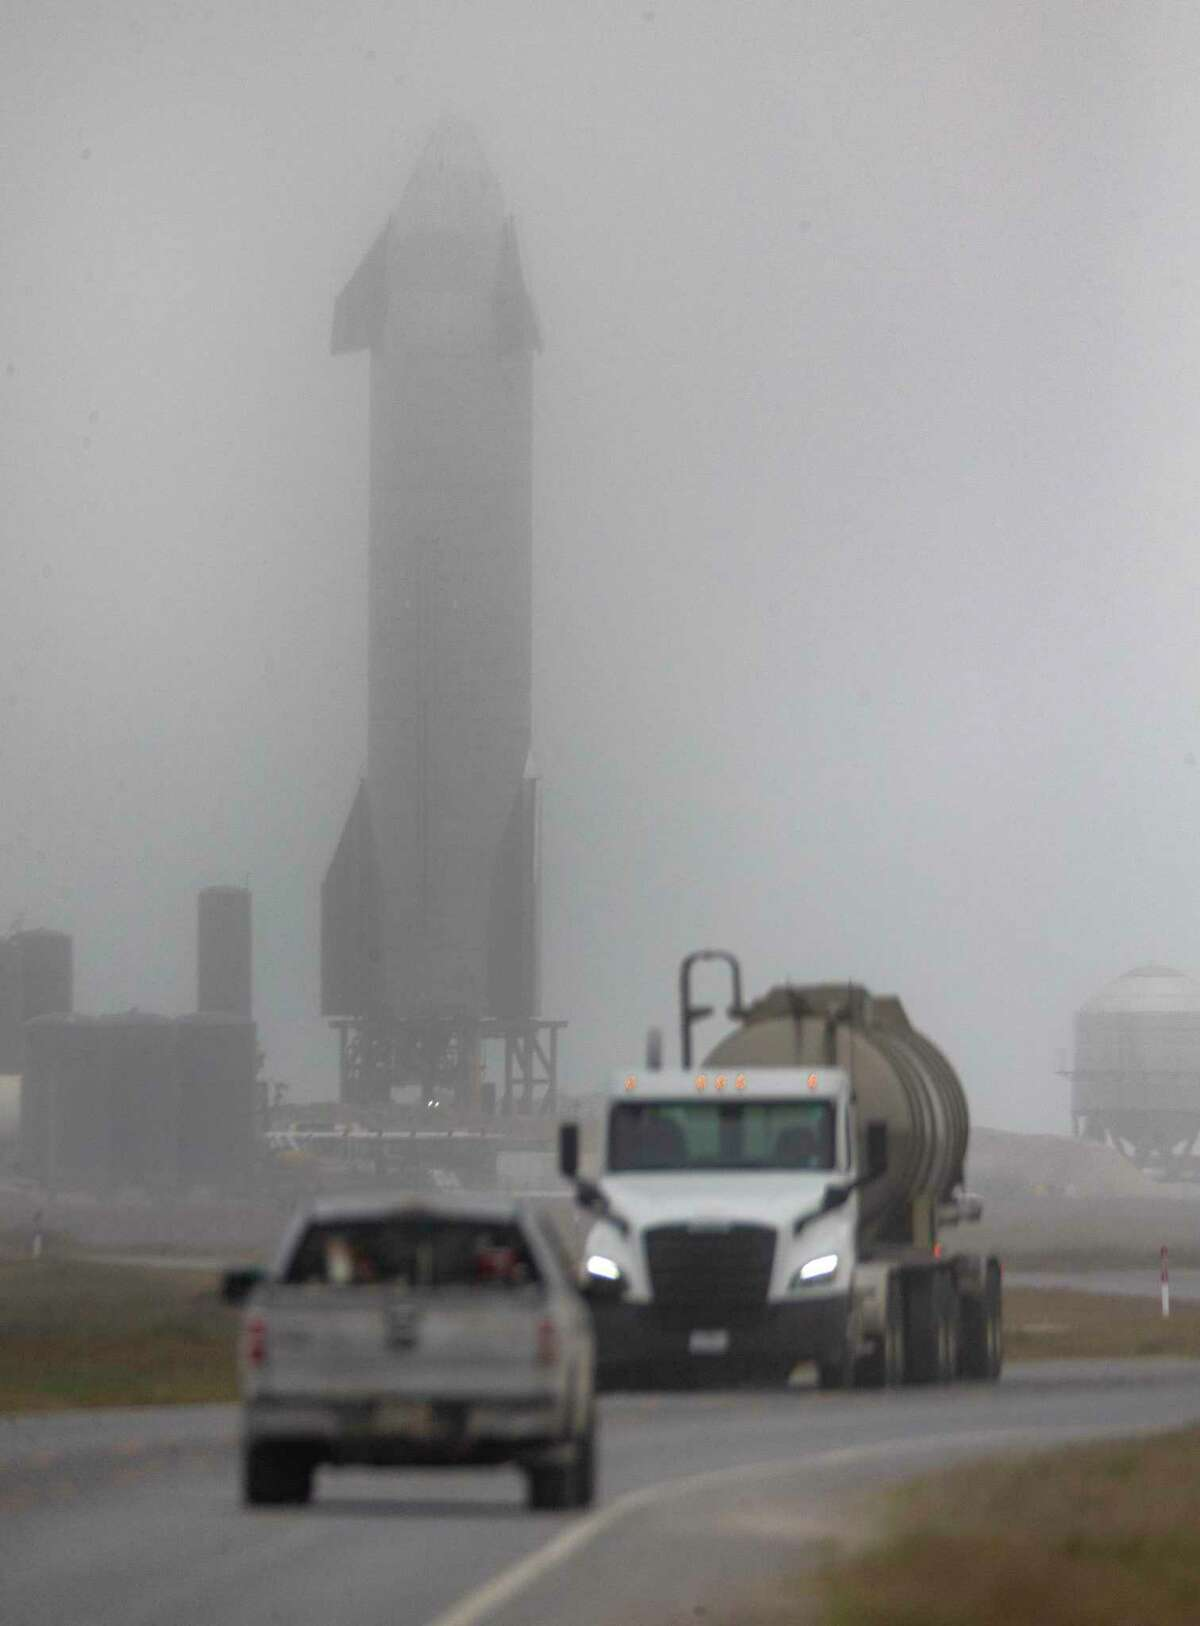 The SpaceX-built Starship SN10 sits obscured on the launch pad Monday, March 1, 2021 in Boca Chica in far south Texas after Monday's scheduled launch was scrubbed due to poor weather conditions. The launch has been rescheduled for some time during the day, Wednesday, March 3, 2021.